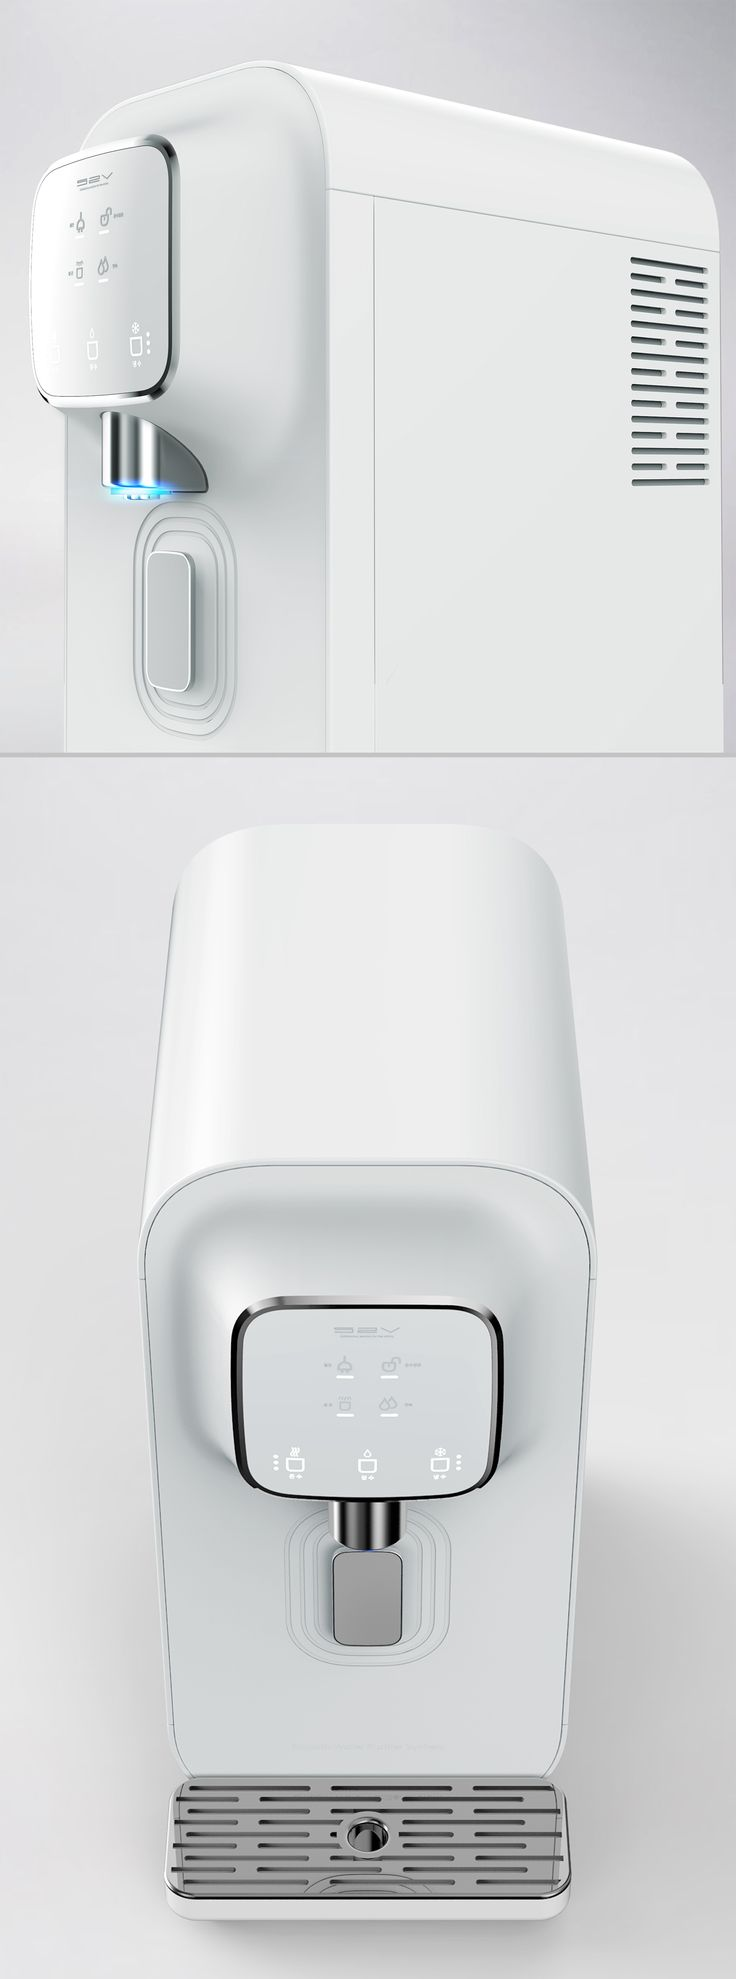 Product design / Industrial design / 제품디자인 / 산업디자인 / water purifier / Appliance /design